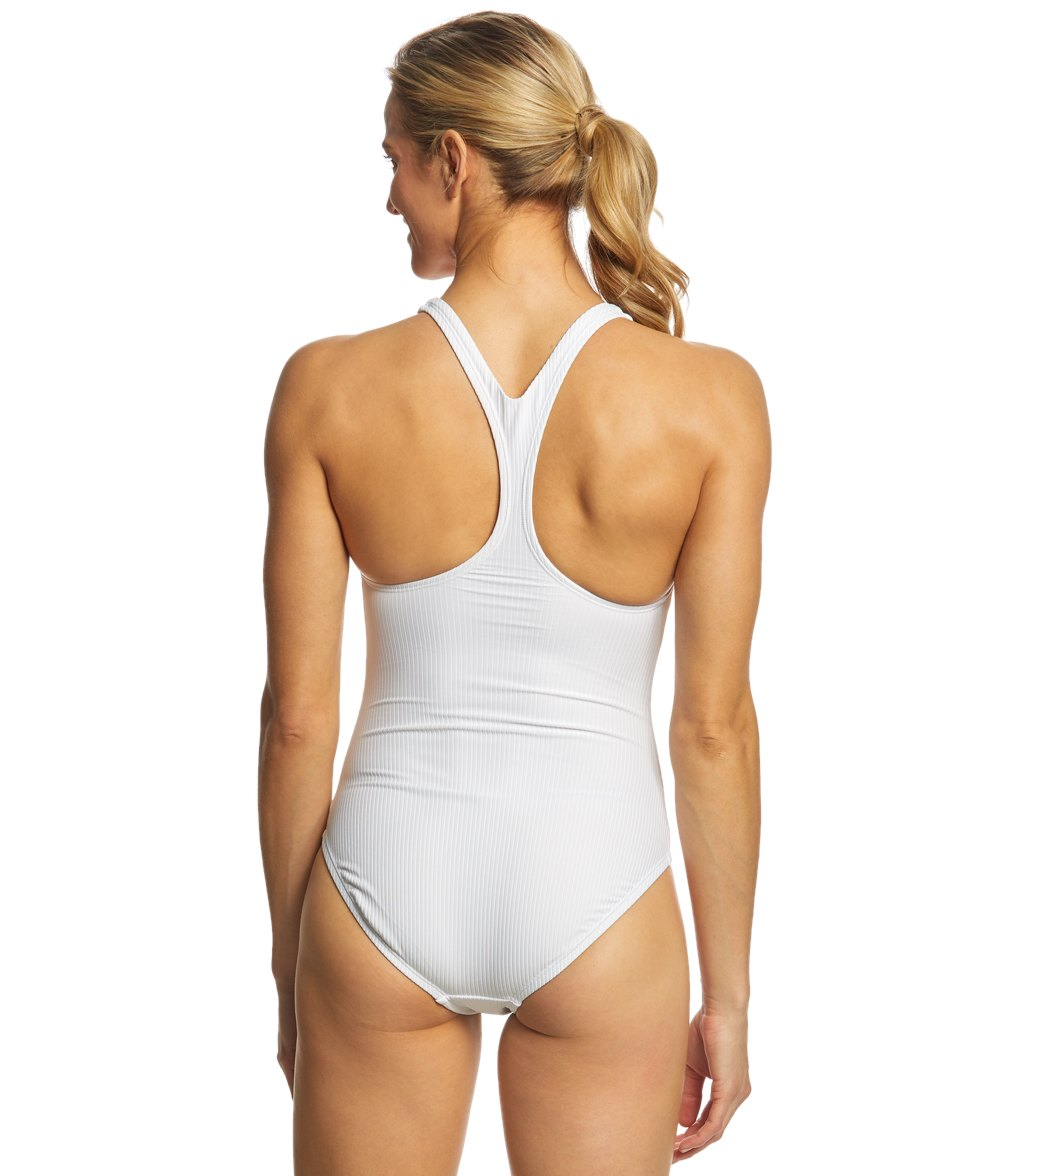 2cd4b74c462d9 Nike Women's Ribbed Racerback One Piece Swimsuit at SwimOutlet.com ...